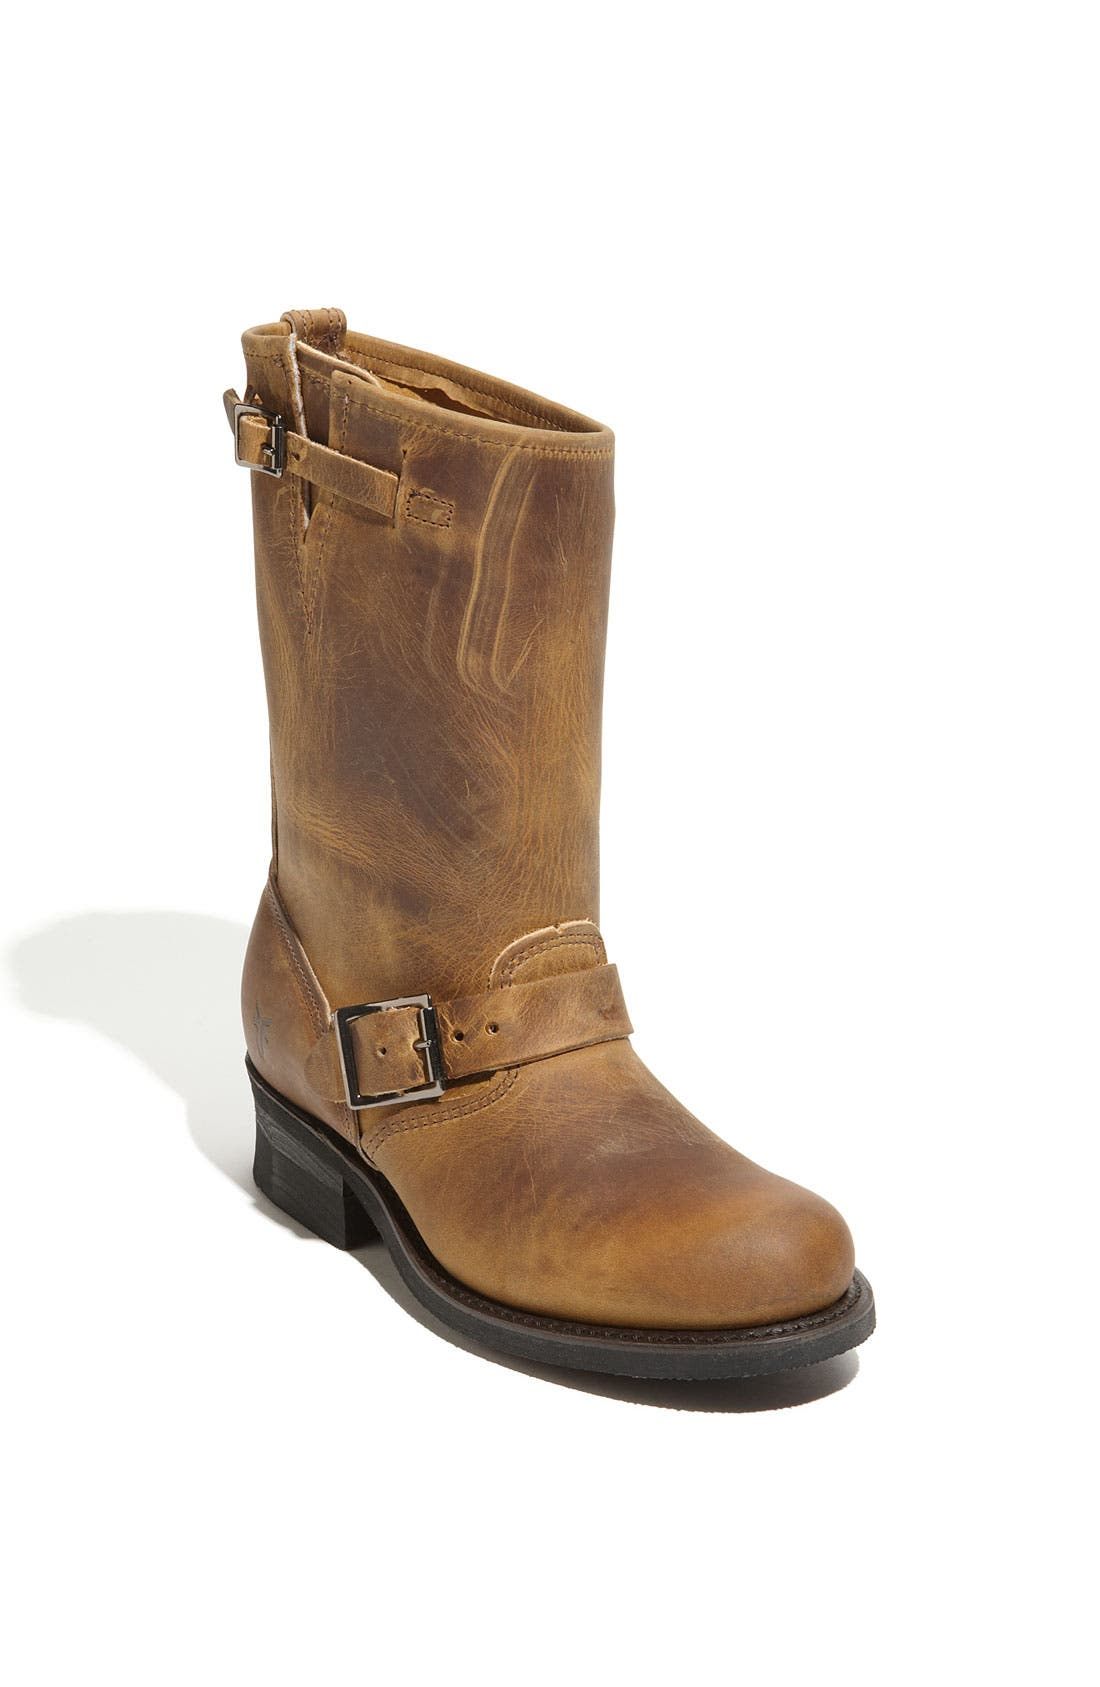 Frye Sale Womens Shoes Cut Engineer Safety Boots Iron Suede Leather Soft Brown 12r Boot